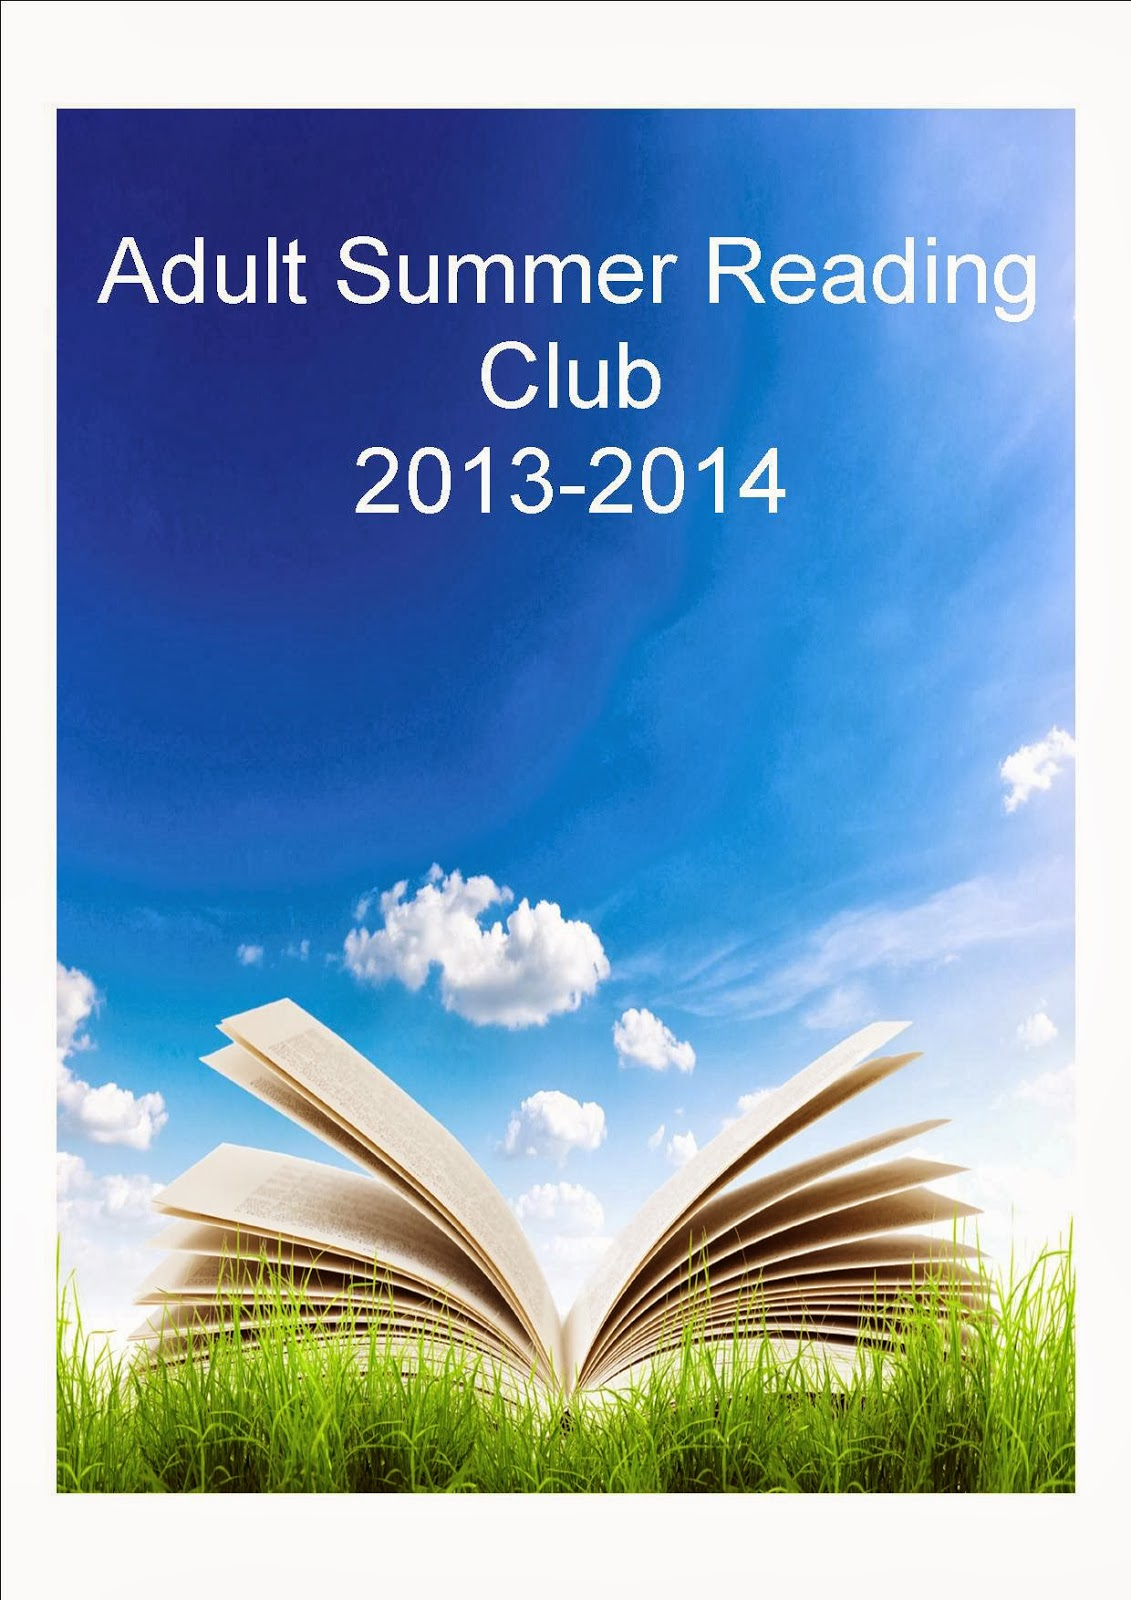 Adult library summer reading clubs